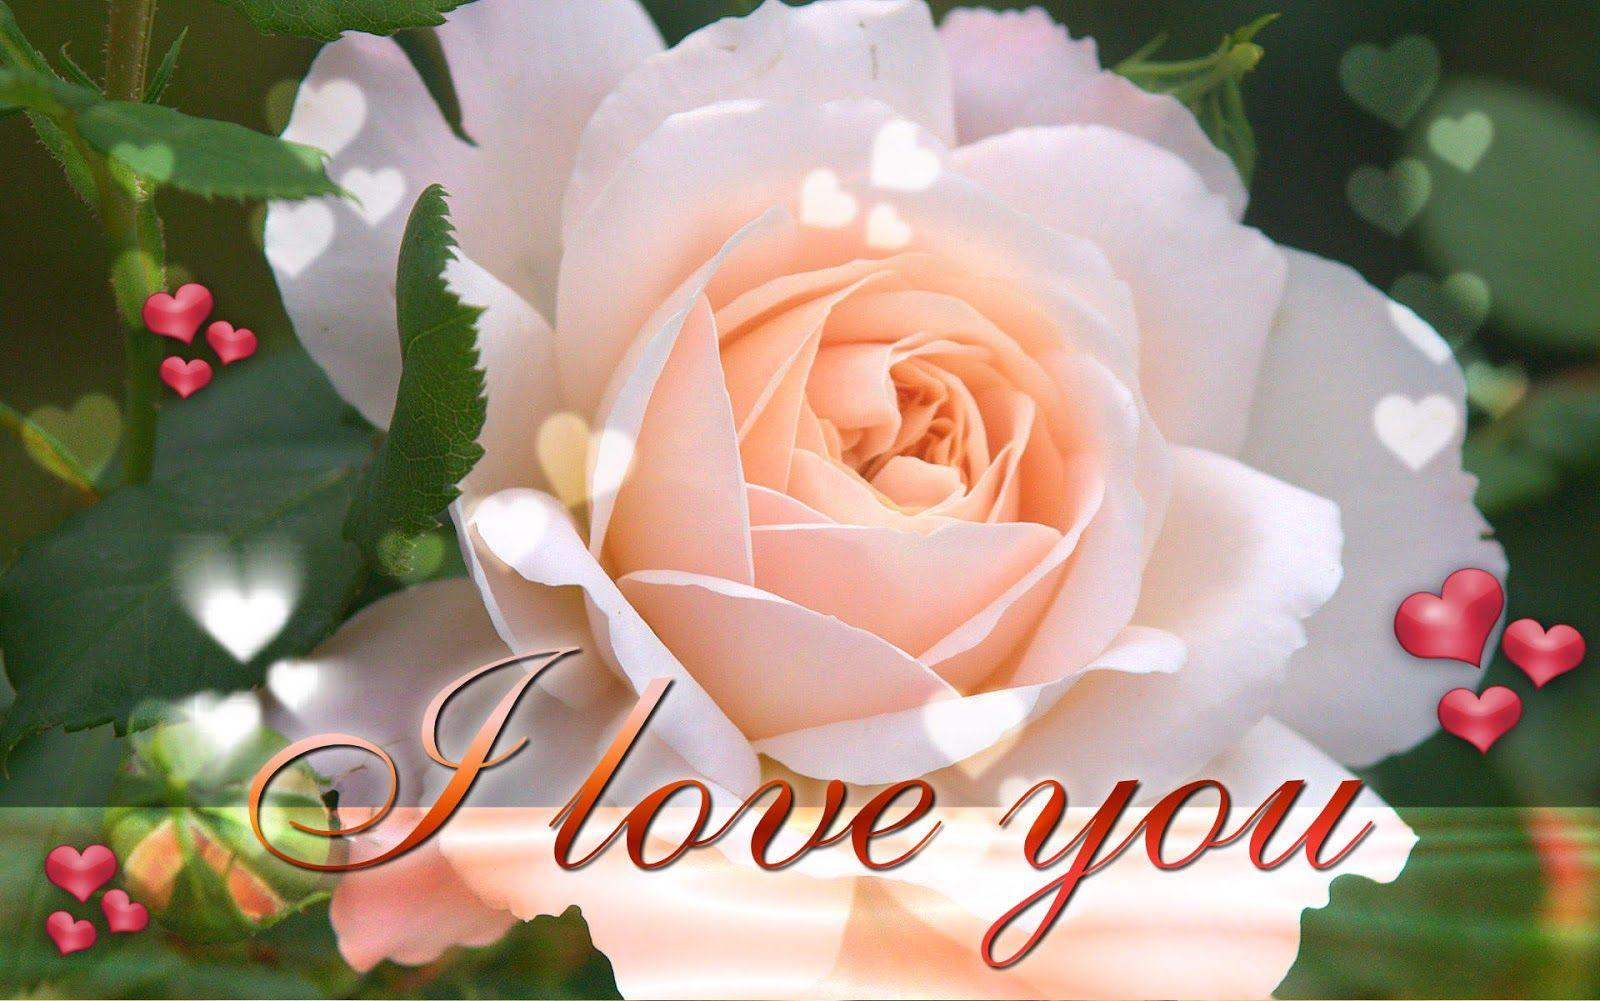 Download I Love You Wallpapers New Hd Image Widescreen Say Afari Of